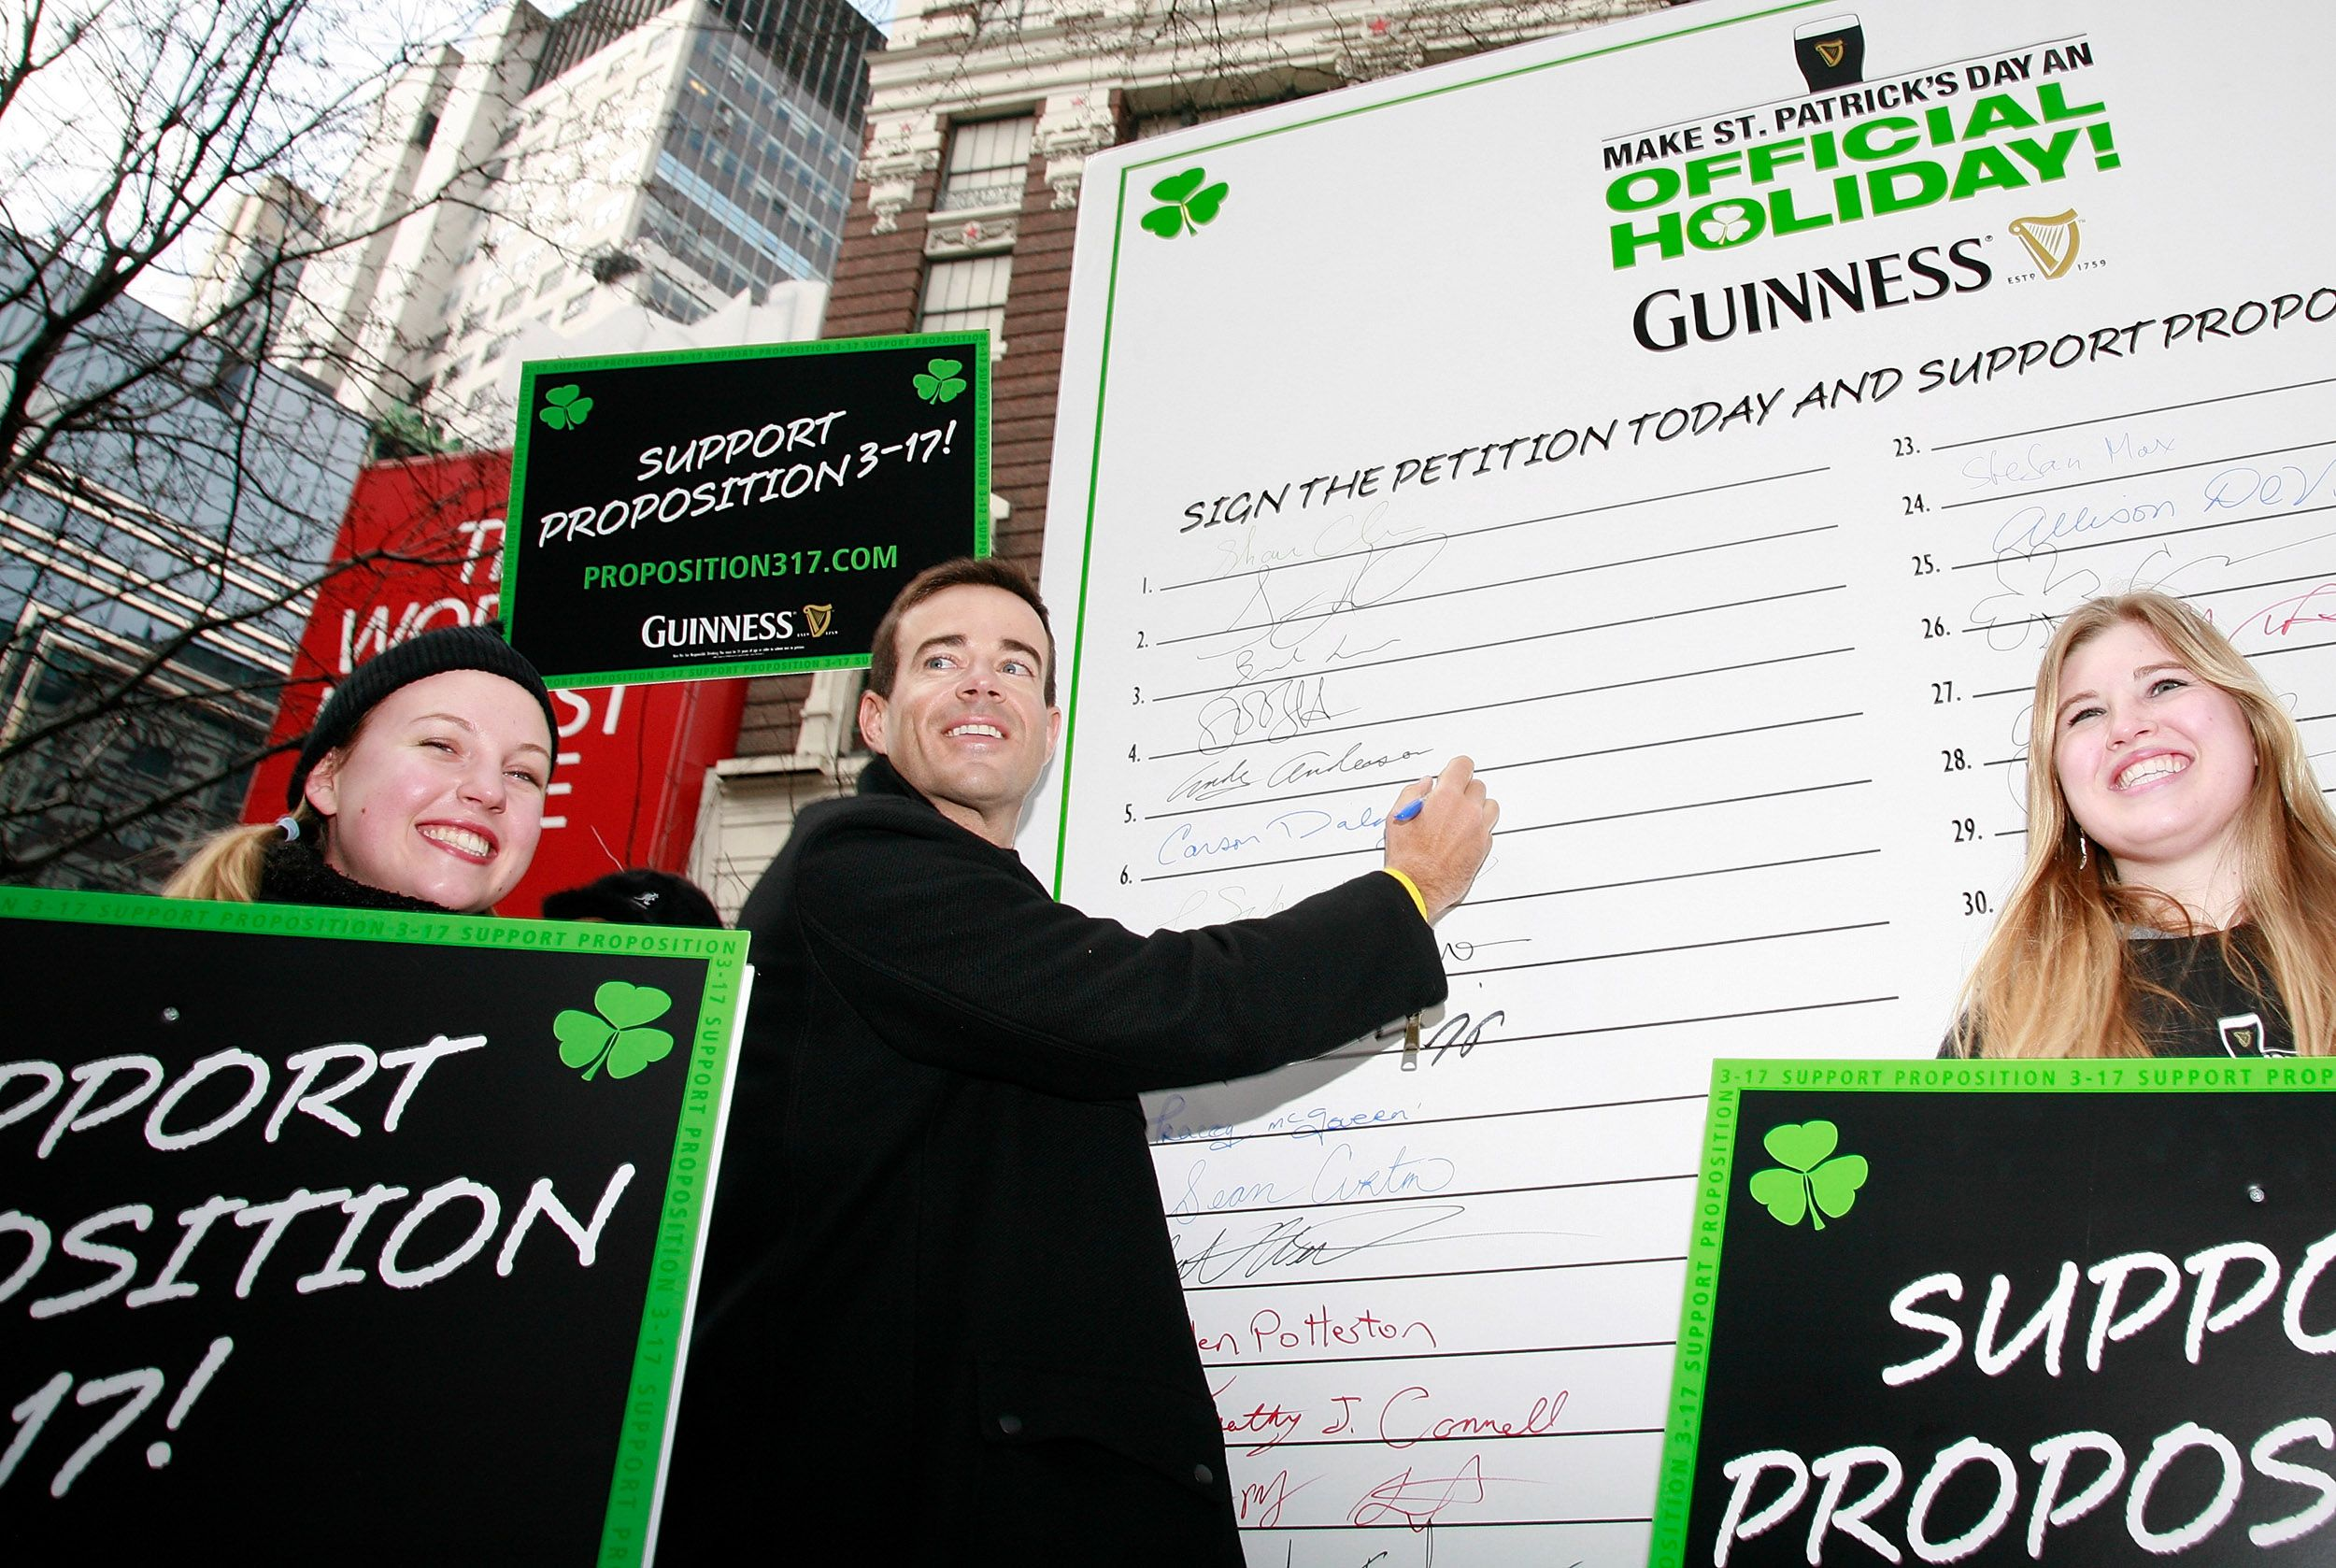 Carson Daly and supporters attend a rally to make St. Patrick's Day an official U.S. holiday at Herald Square on March 12, 2008 in New York City.